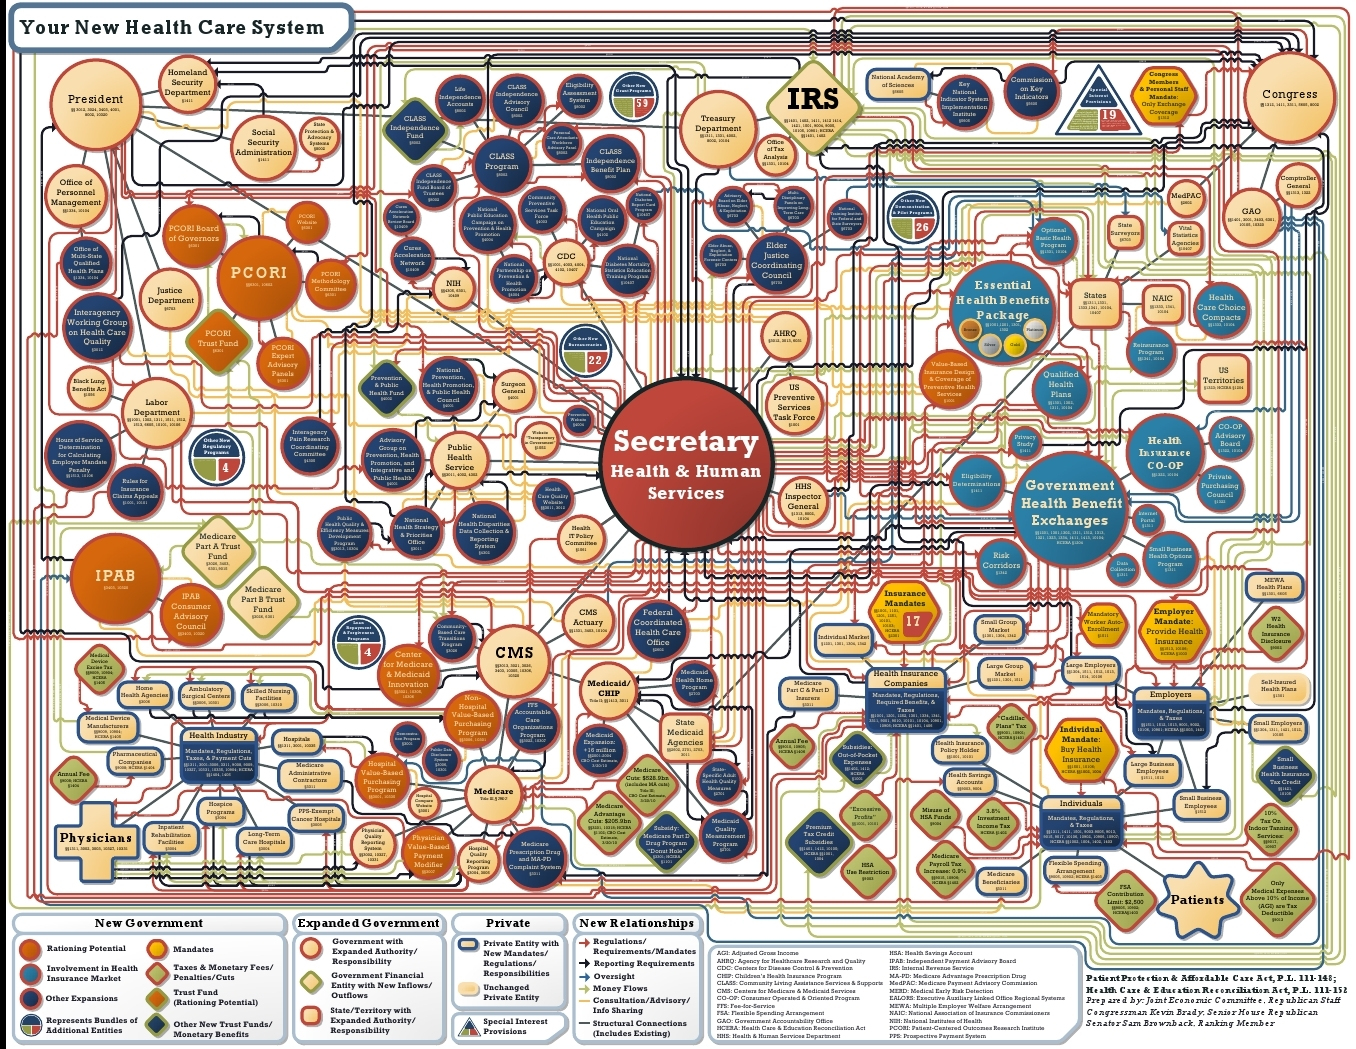 Complexity of the healthcare system